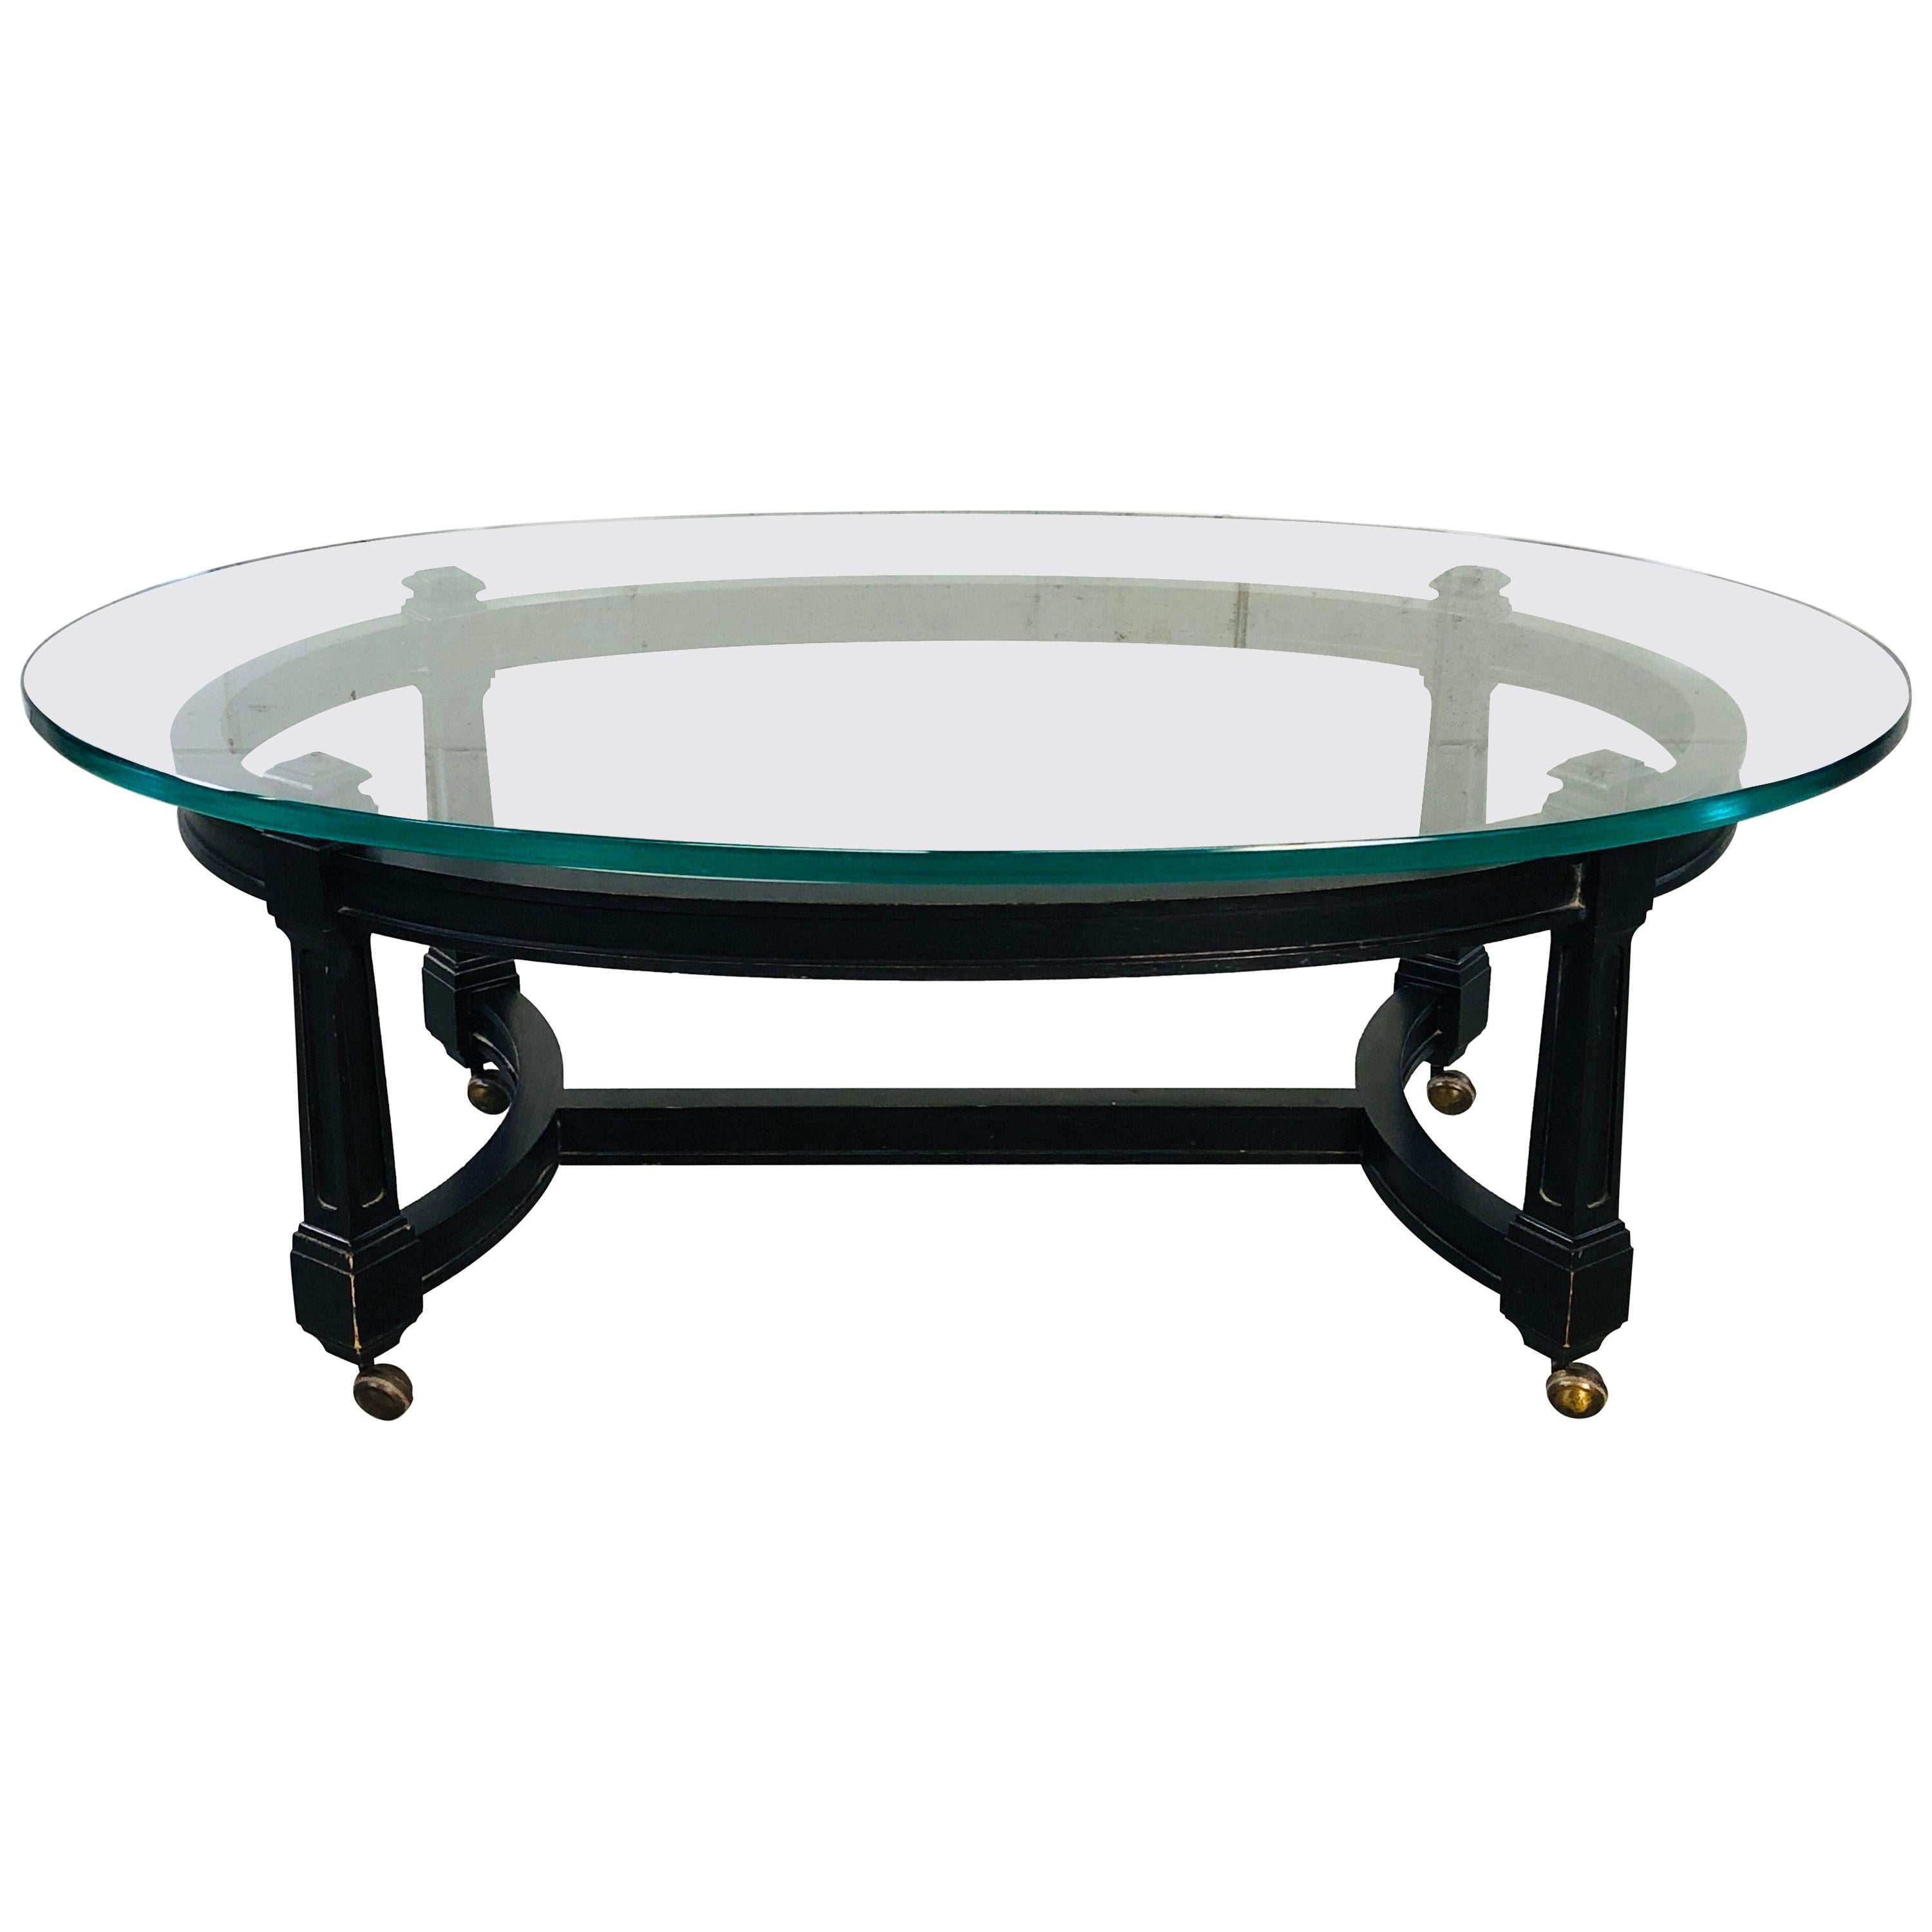 Picture of: Vintage Oval Glass Top And Black Wood Coffee Table For Sale At 1stdibs